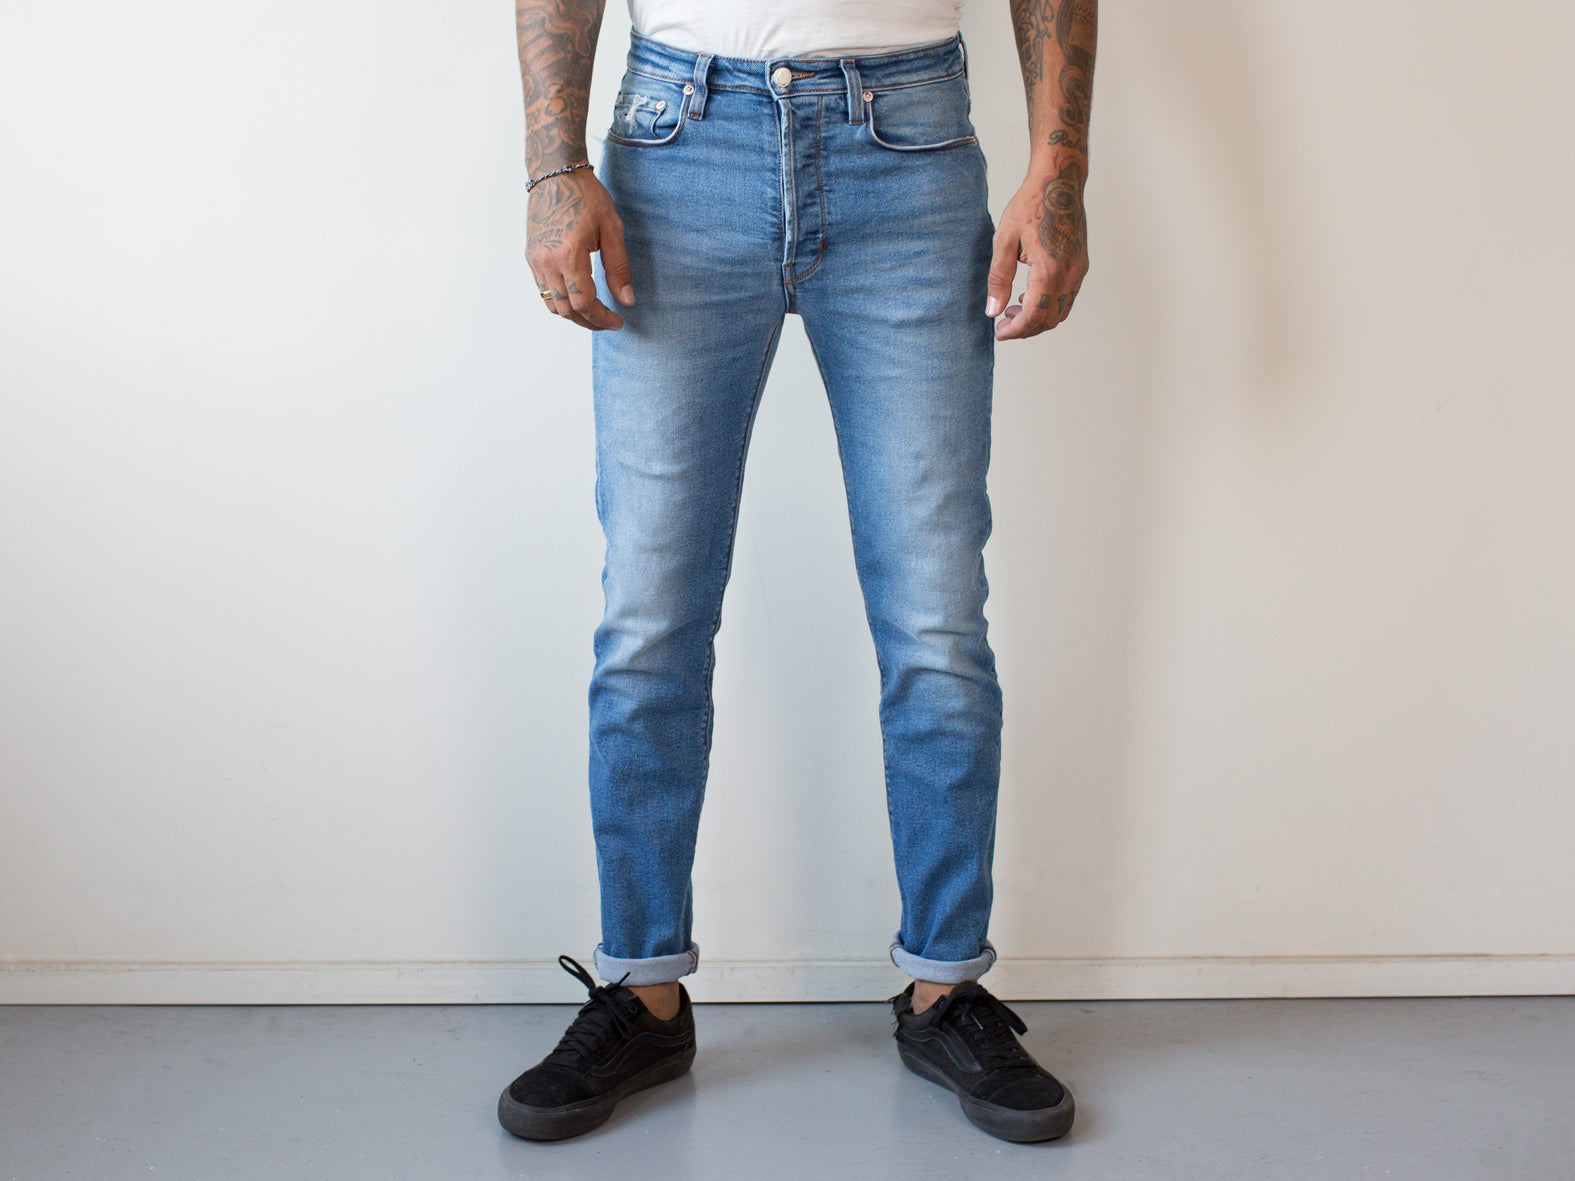 No 16 WASH. UNION JEANS